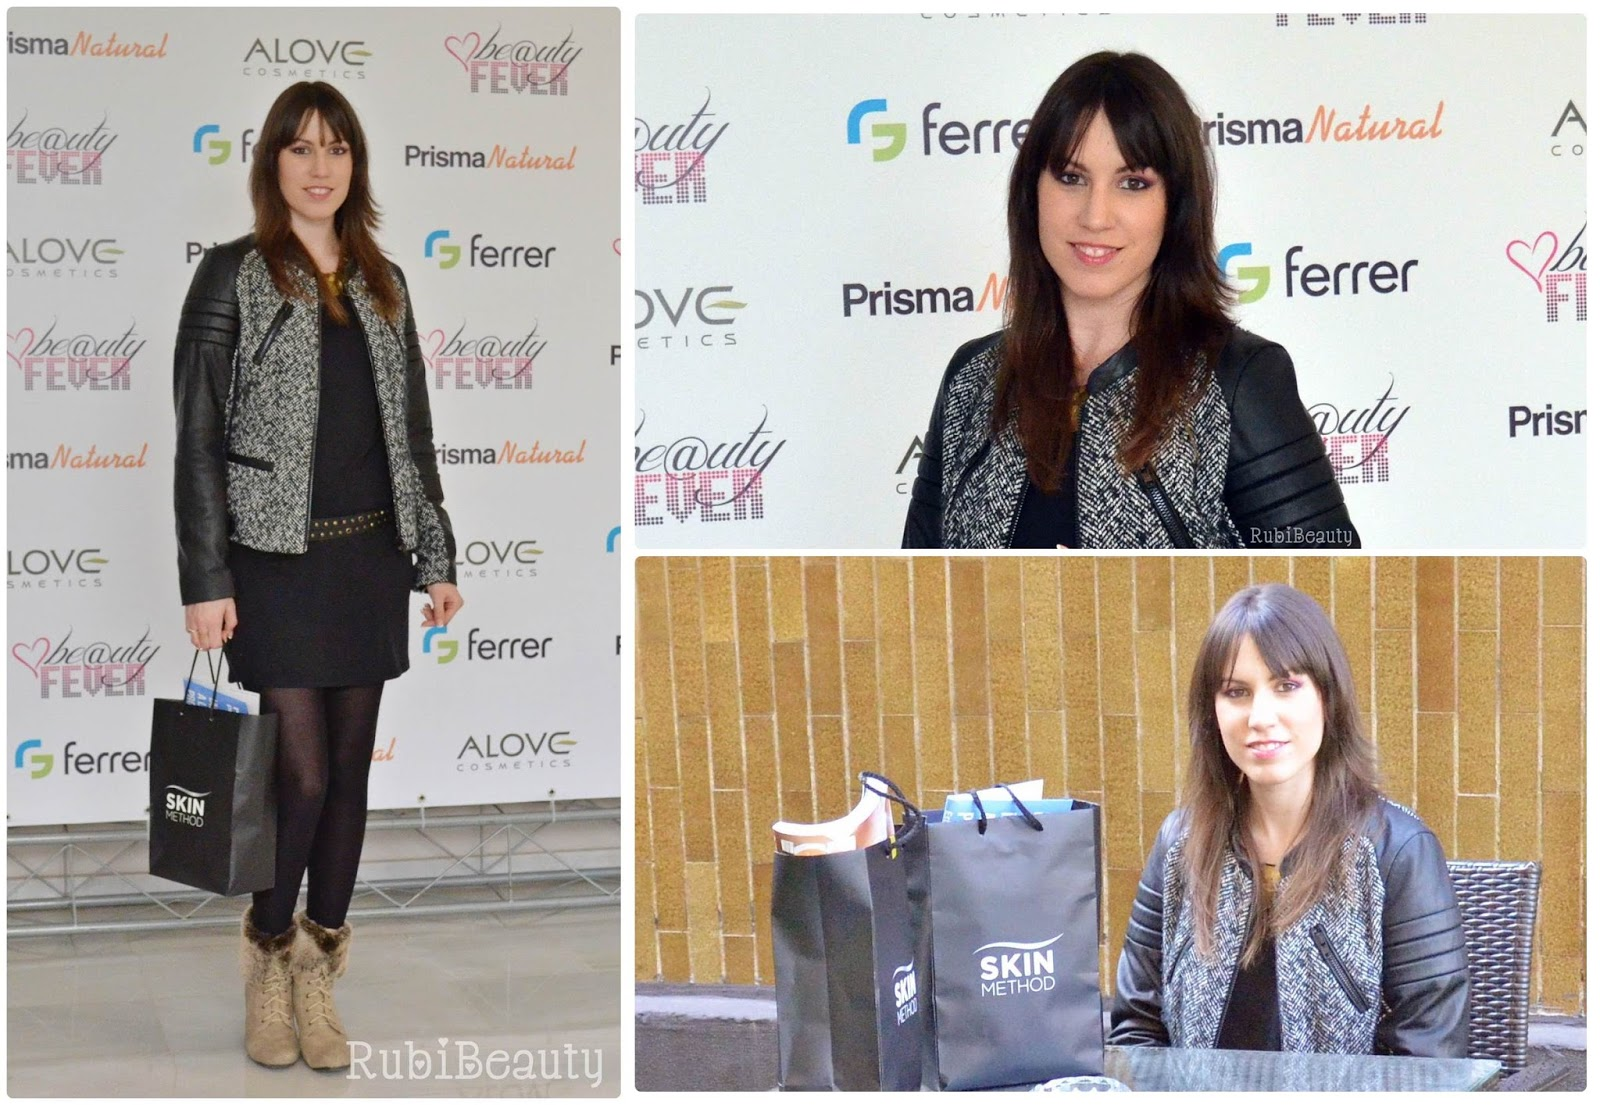 rubibeauty review beautyfever 2015 productos haul muestras outfit